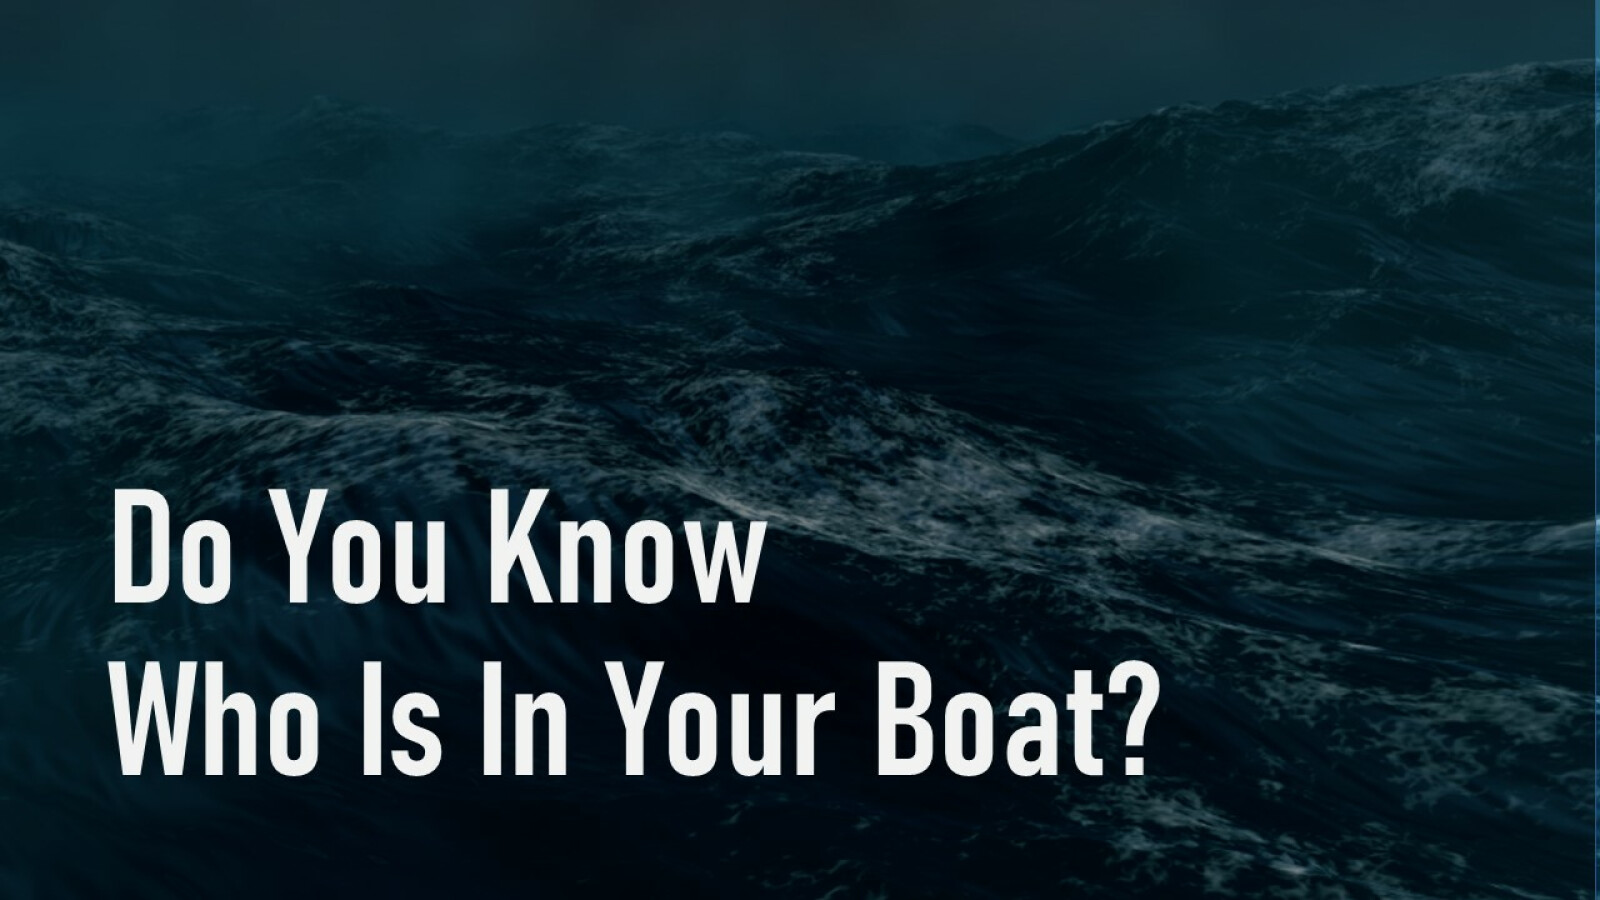 Do You Know Who Is In Your Boat?